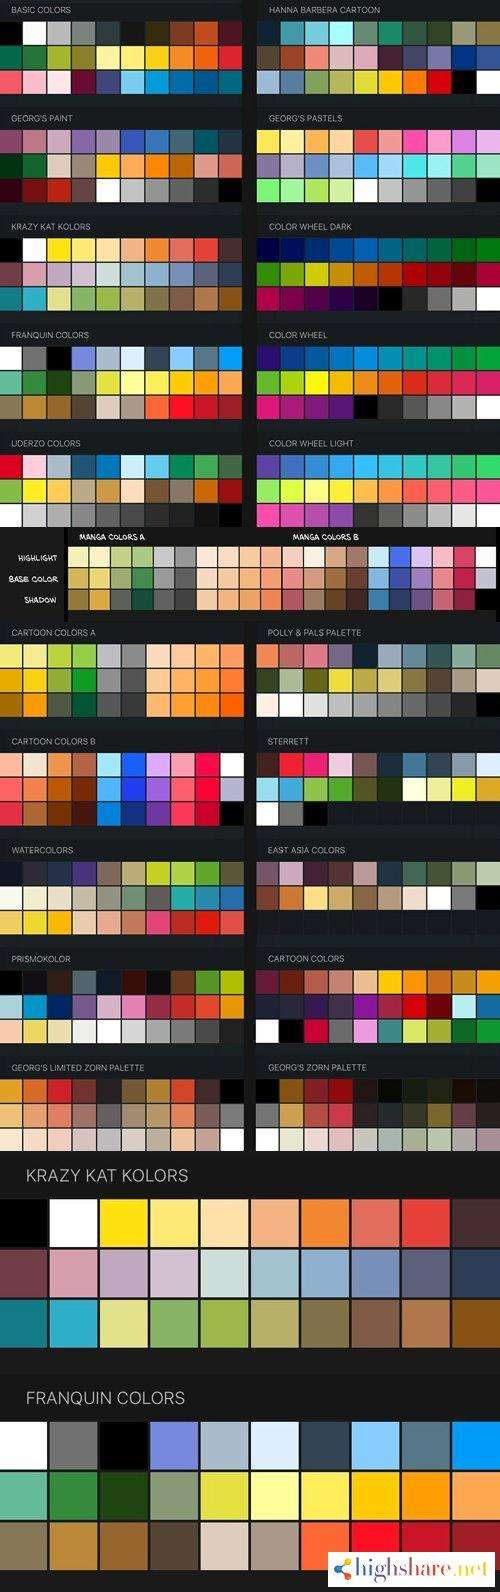 procreate color swatches 22 palettes for painting and drawing 5f49f77d54add - Procreate Color Swatches: 22 Palettes for Painting and Drawing